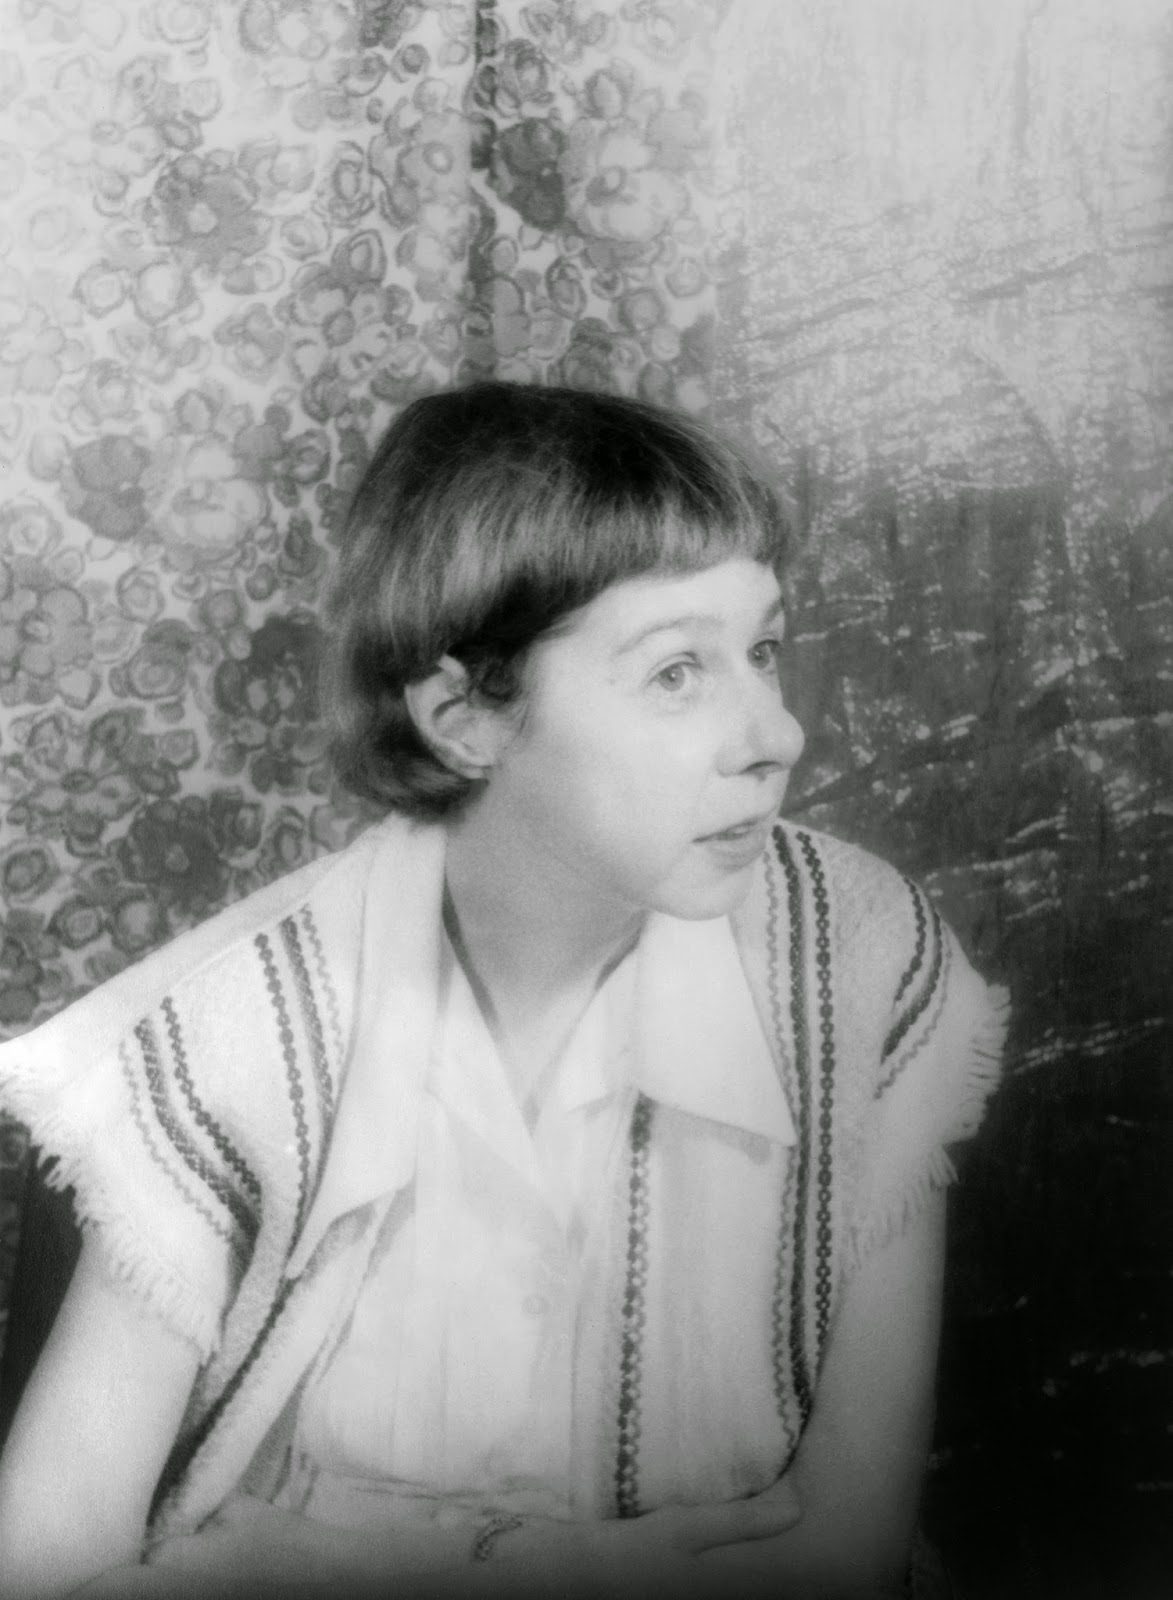 Photo of Carson McCullers.  Source: http://upload.wikimedia.org/wikipedia/commons/c/c1/Carsonmccullers.jpg